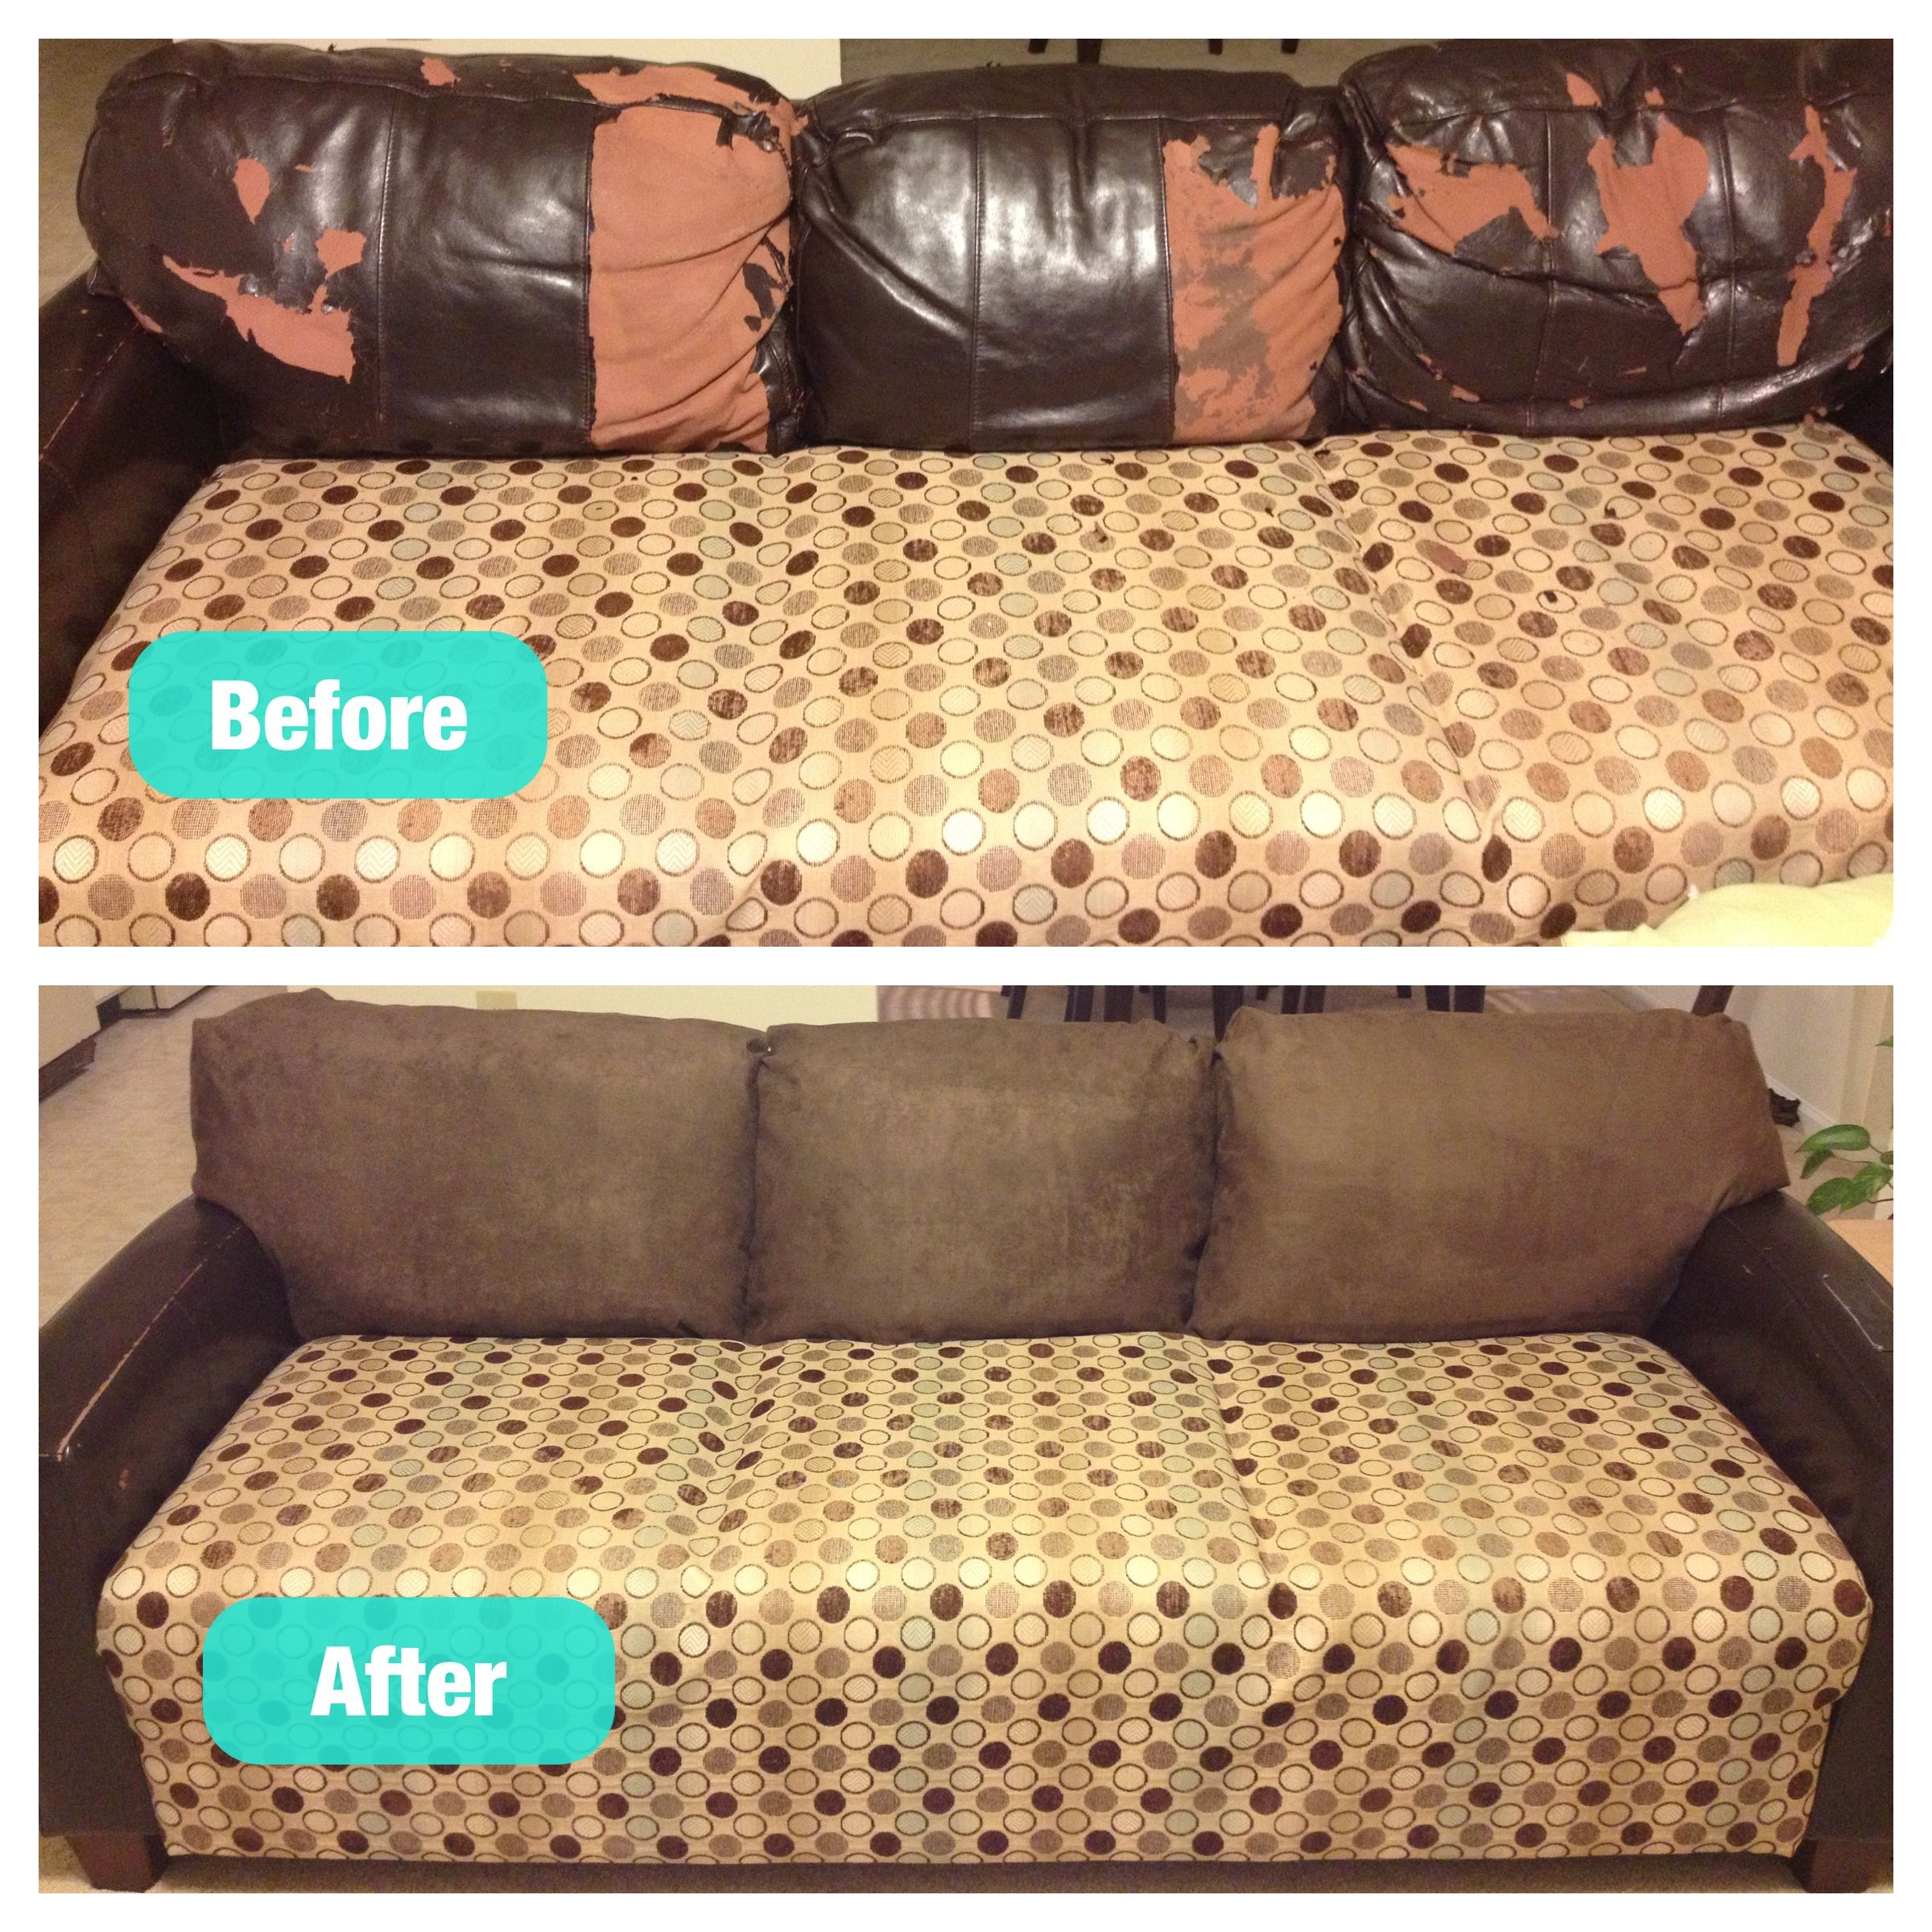 leather sofa repair kits for rips ashton microfiber bed fixed my peeling couch cushions under 60 not